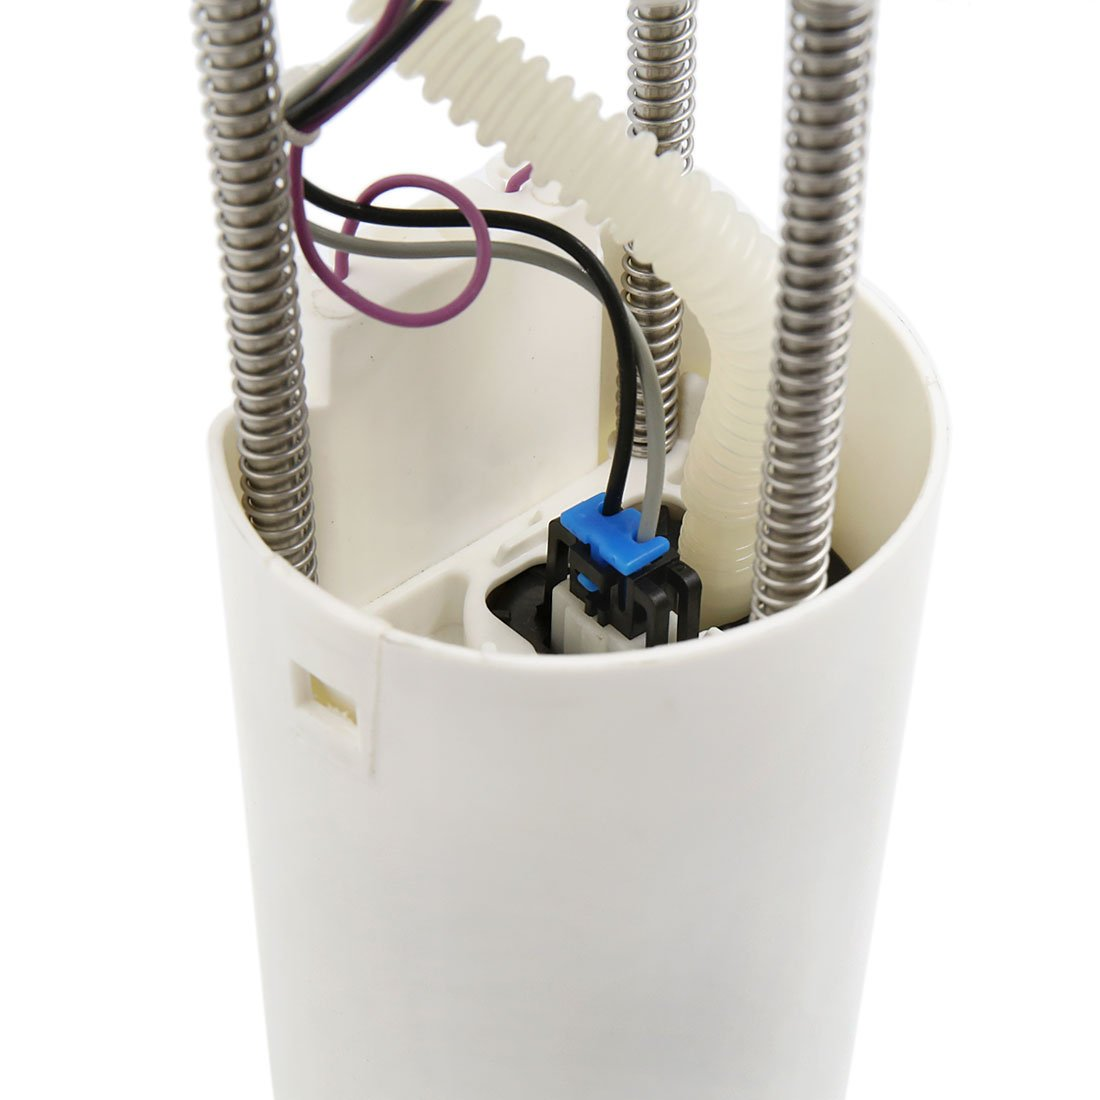 uxcell/® E3972M MU1777 67368 Fuel Pump Module Assembly for 1998-2000 Chevrolet Tahoe